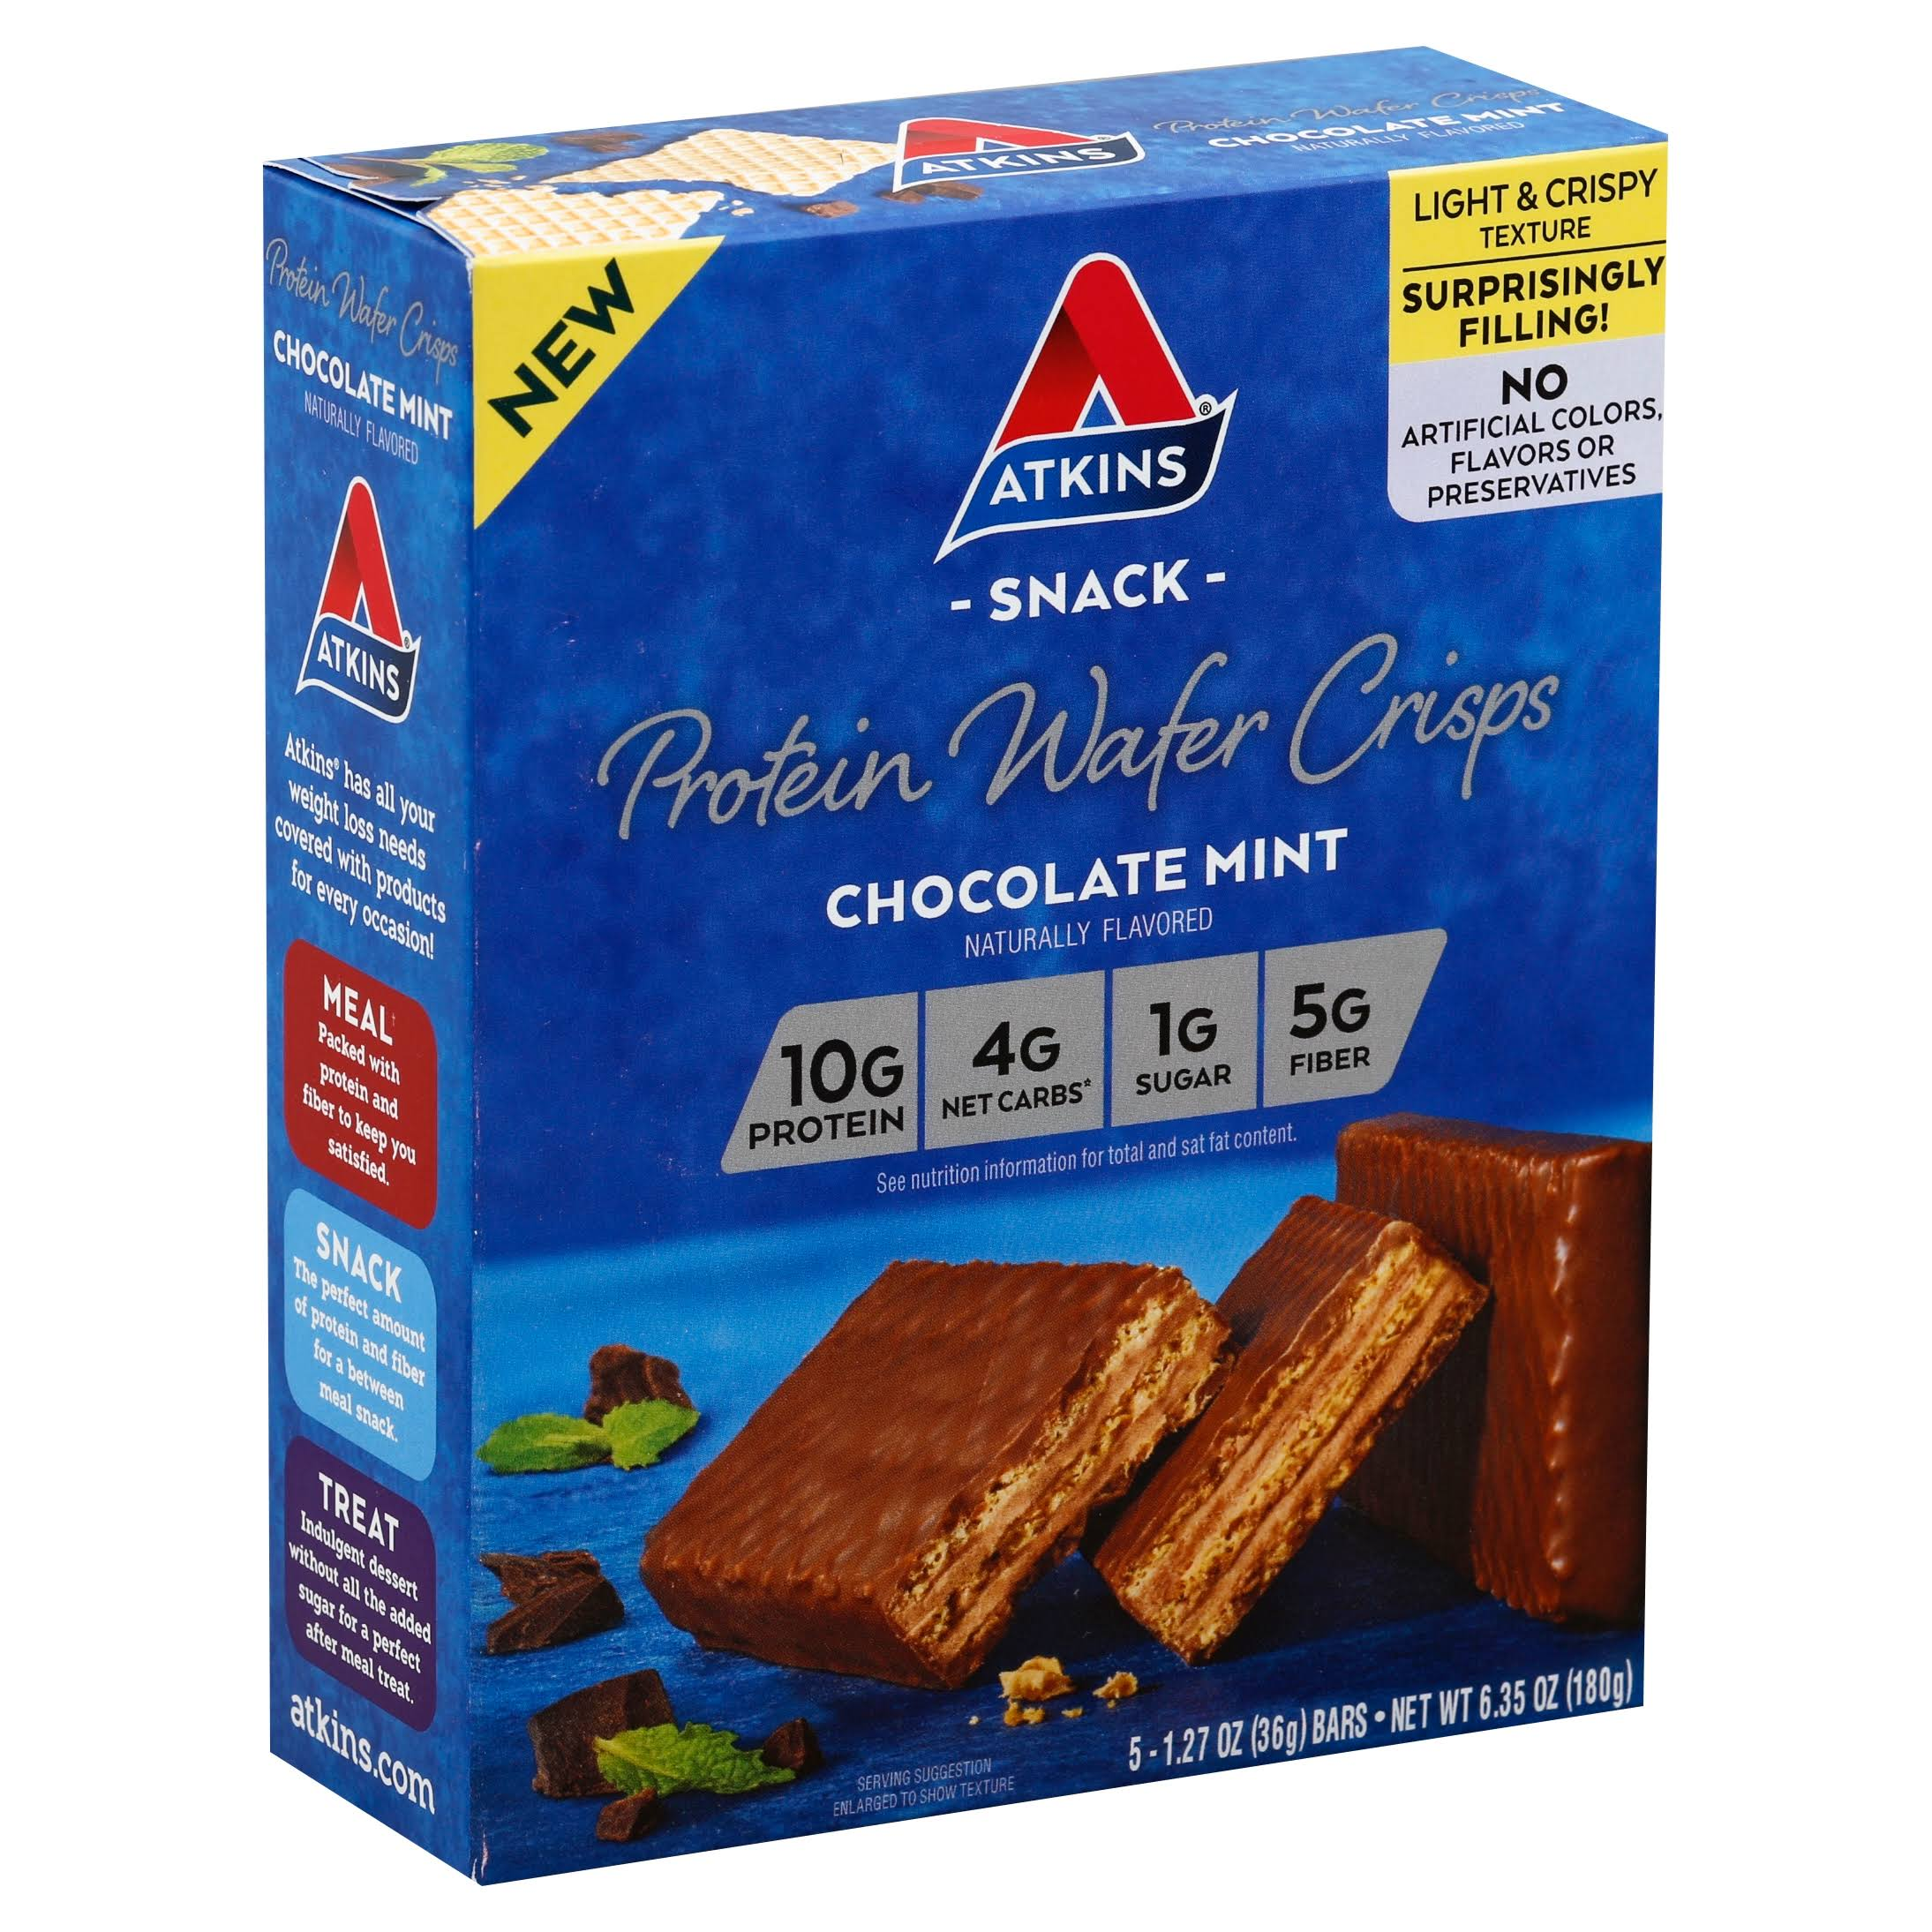 Atkins Protein Wafer Crisps - Chocolate Mint, 5 Bars, 180g